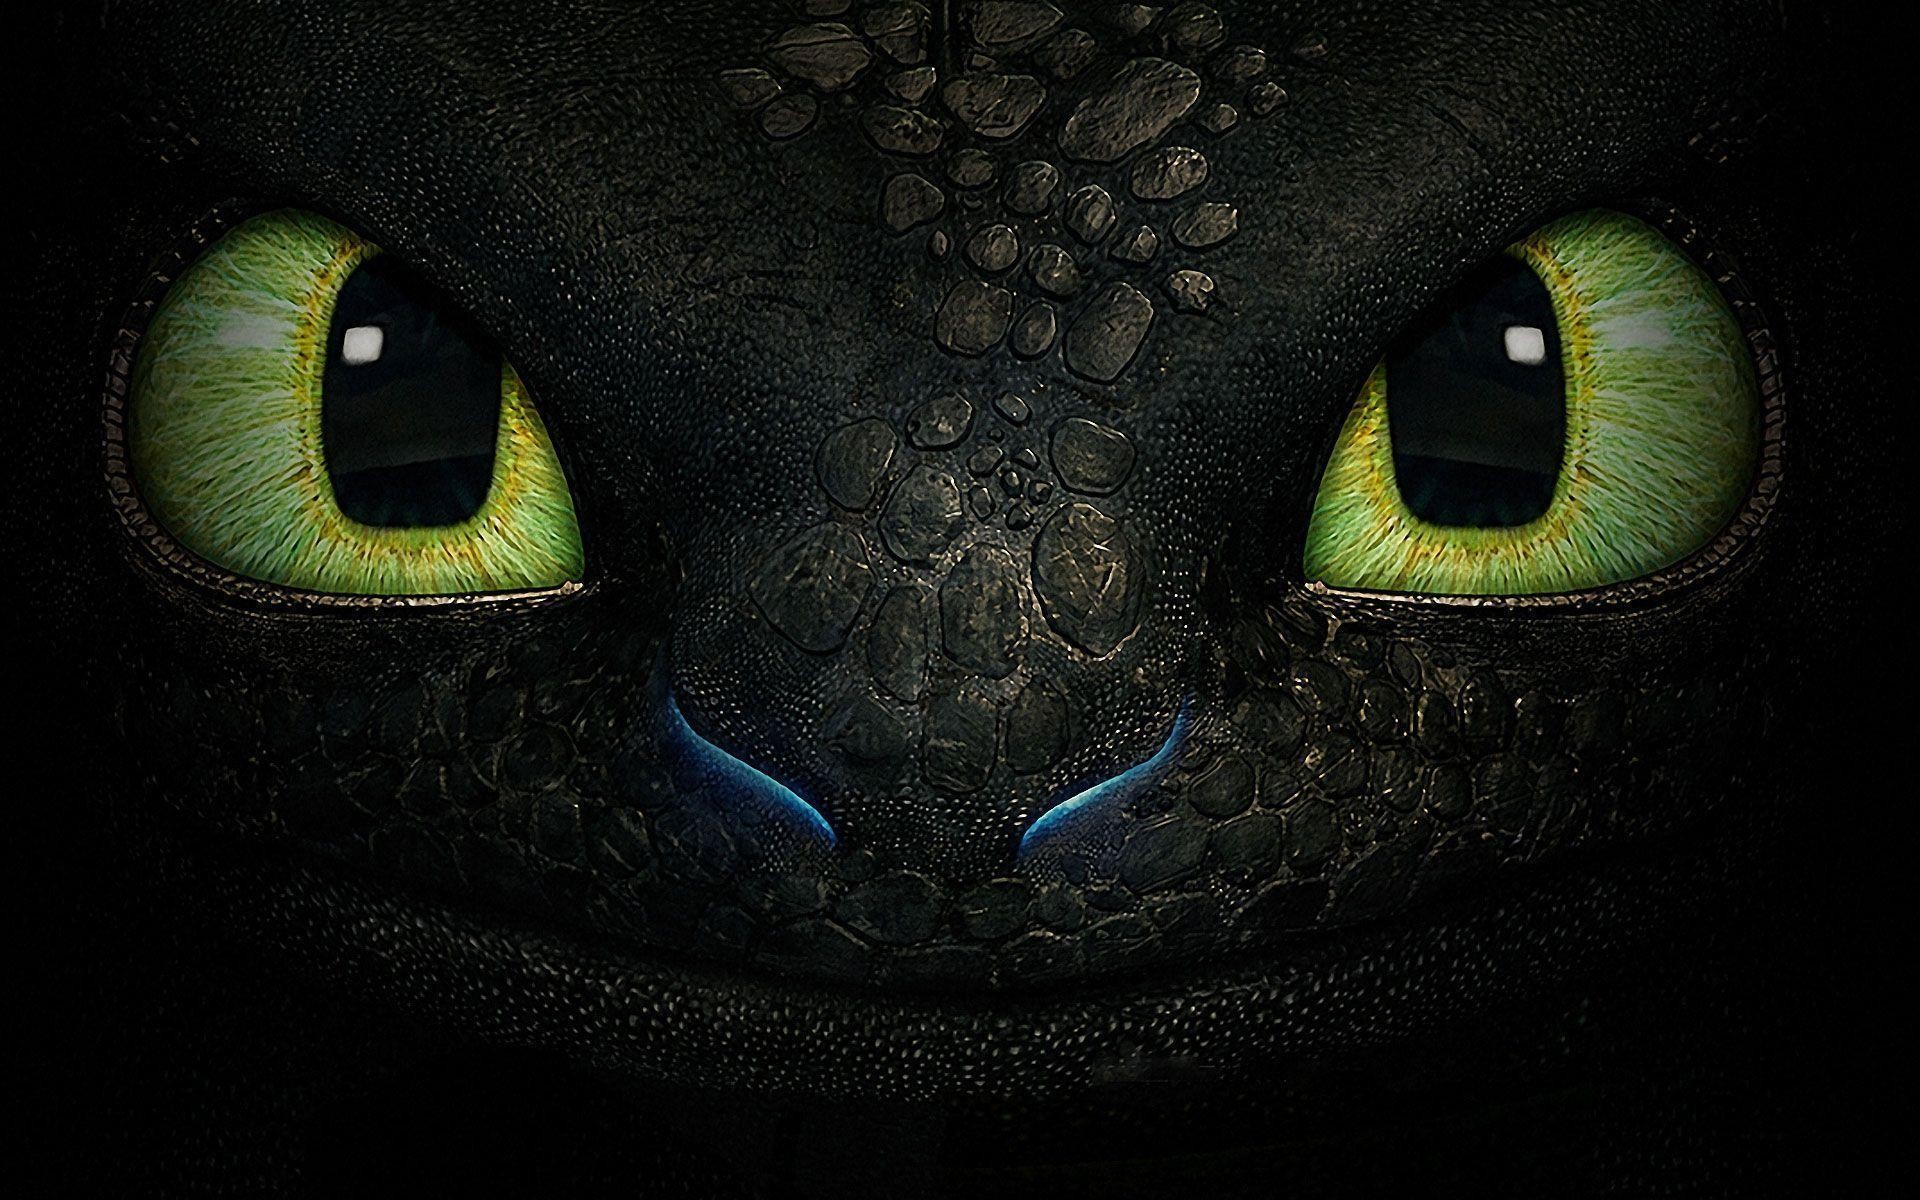 Toothless The Dragon Wallpaper Wallpapertag